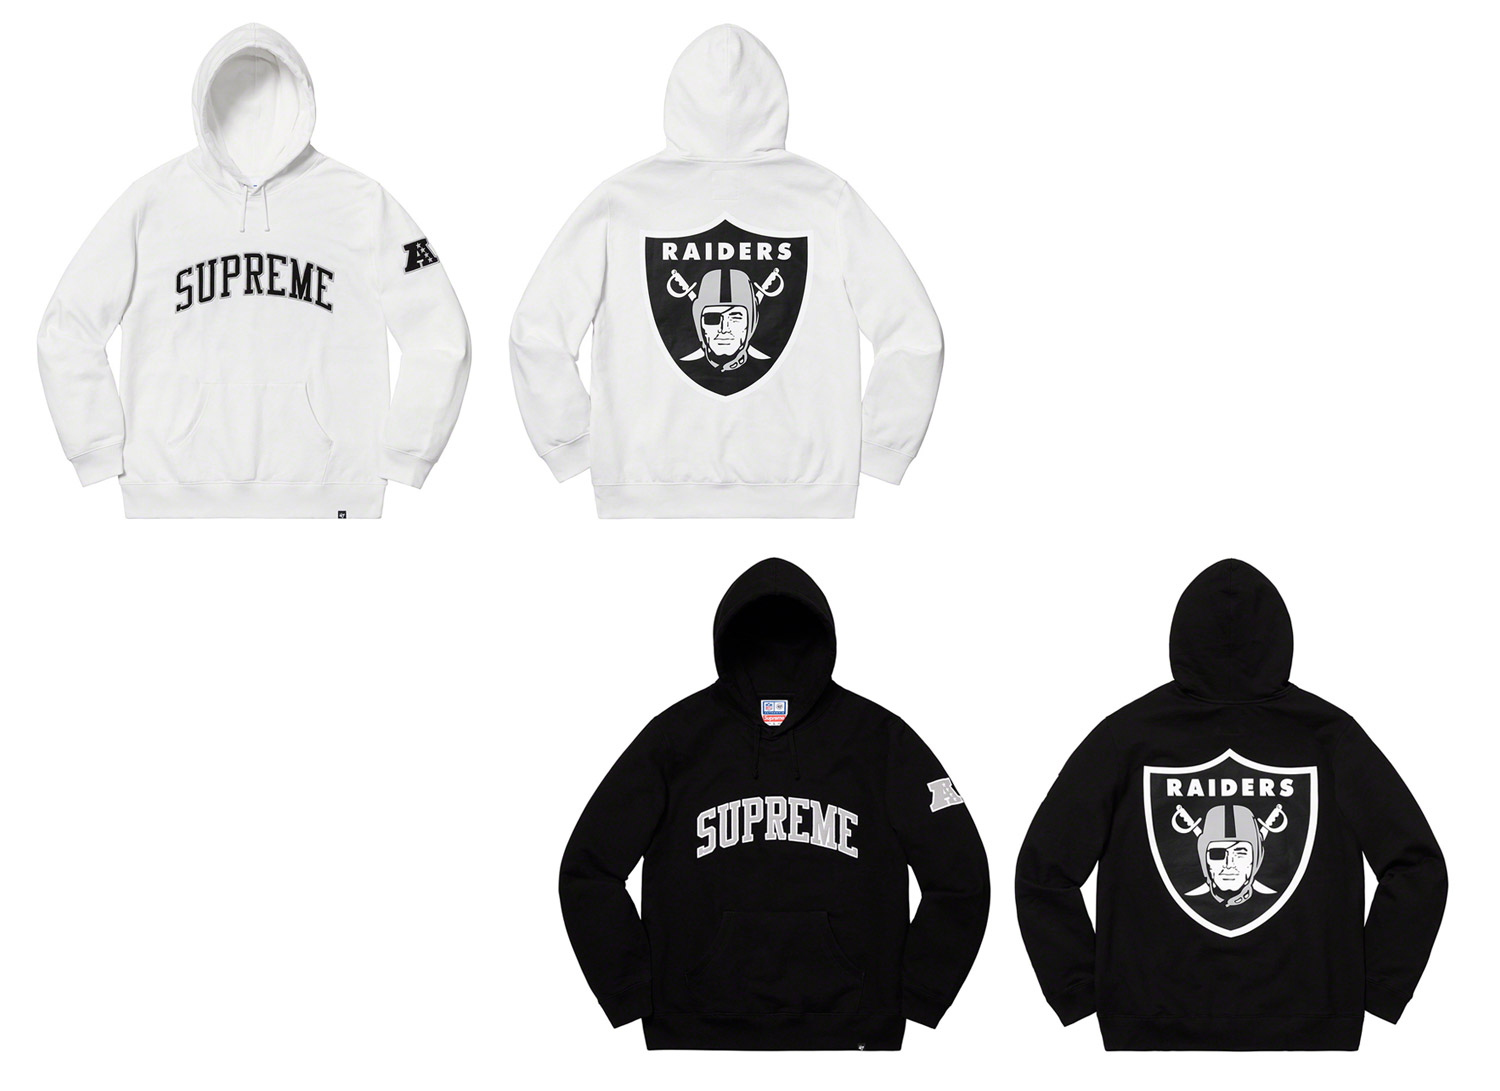 Supreme®/NFL/Raiders/47 Hooded Sweatshirt